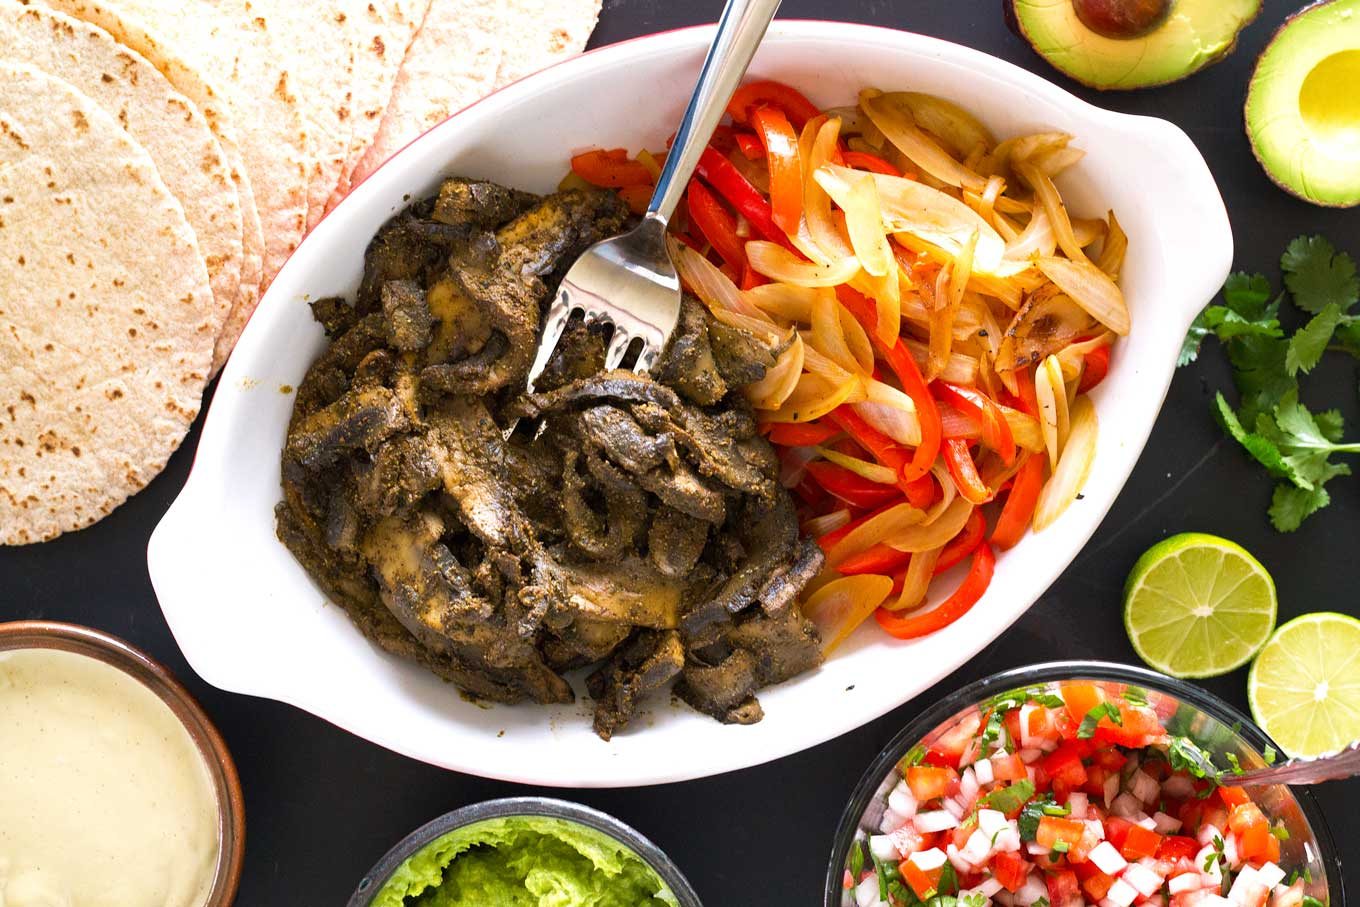 Ultimate Vegan Fajitas | Marinated portobello mushrooms, peppers, onions, pico de gallo, guacamole, cashew cream, tortillas | https://passtheplants.com/